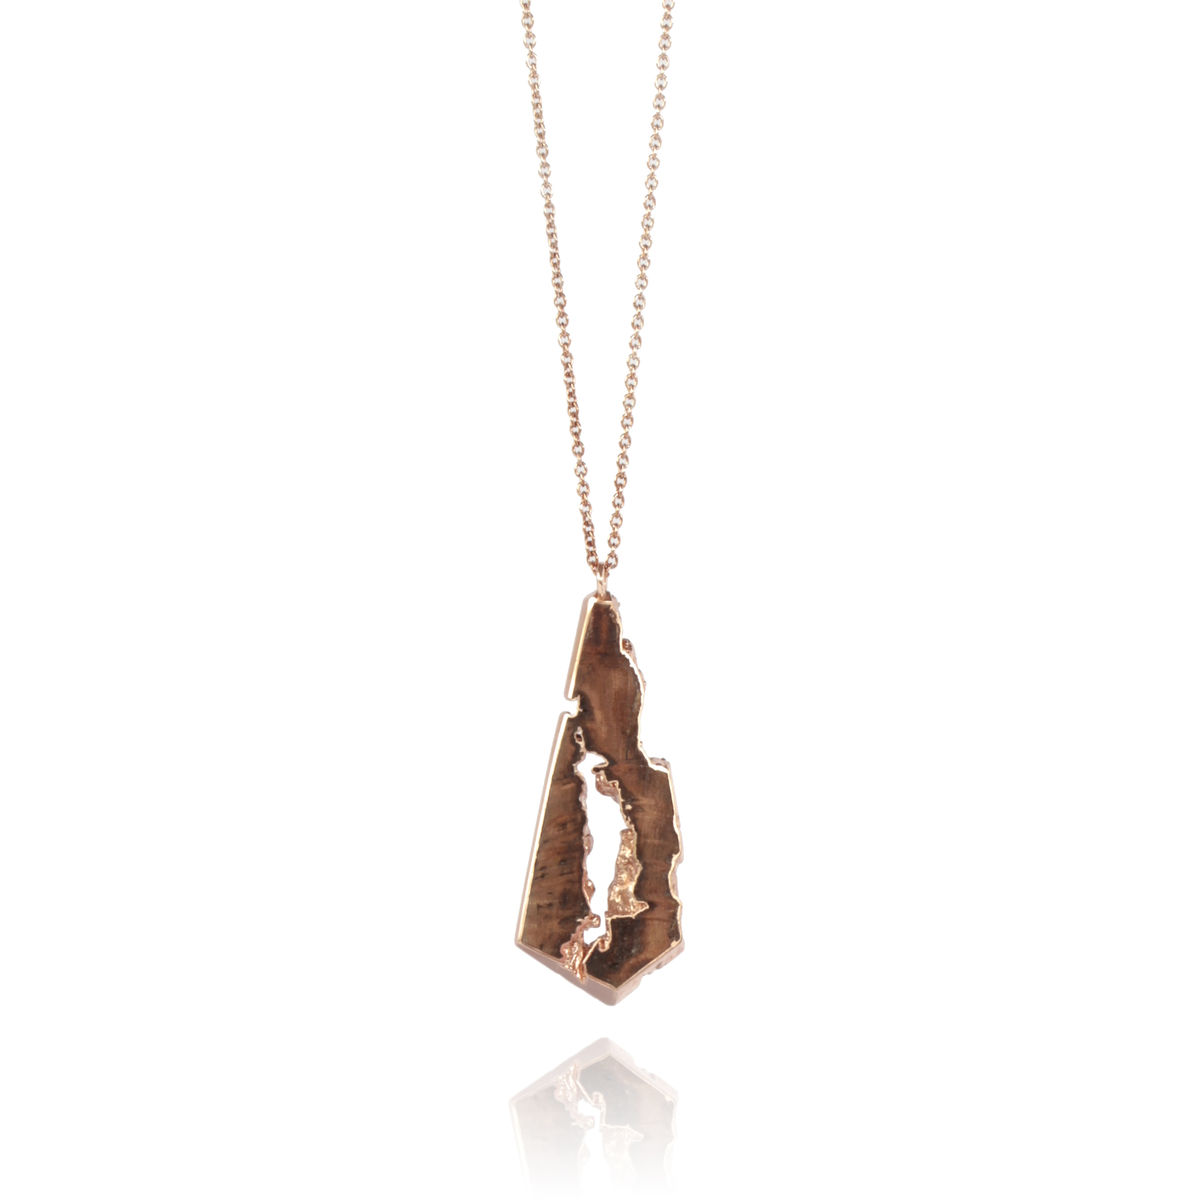 Cherry wood finished in 22ct rose gold  - product images  of